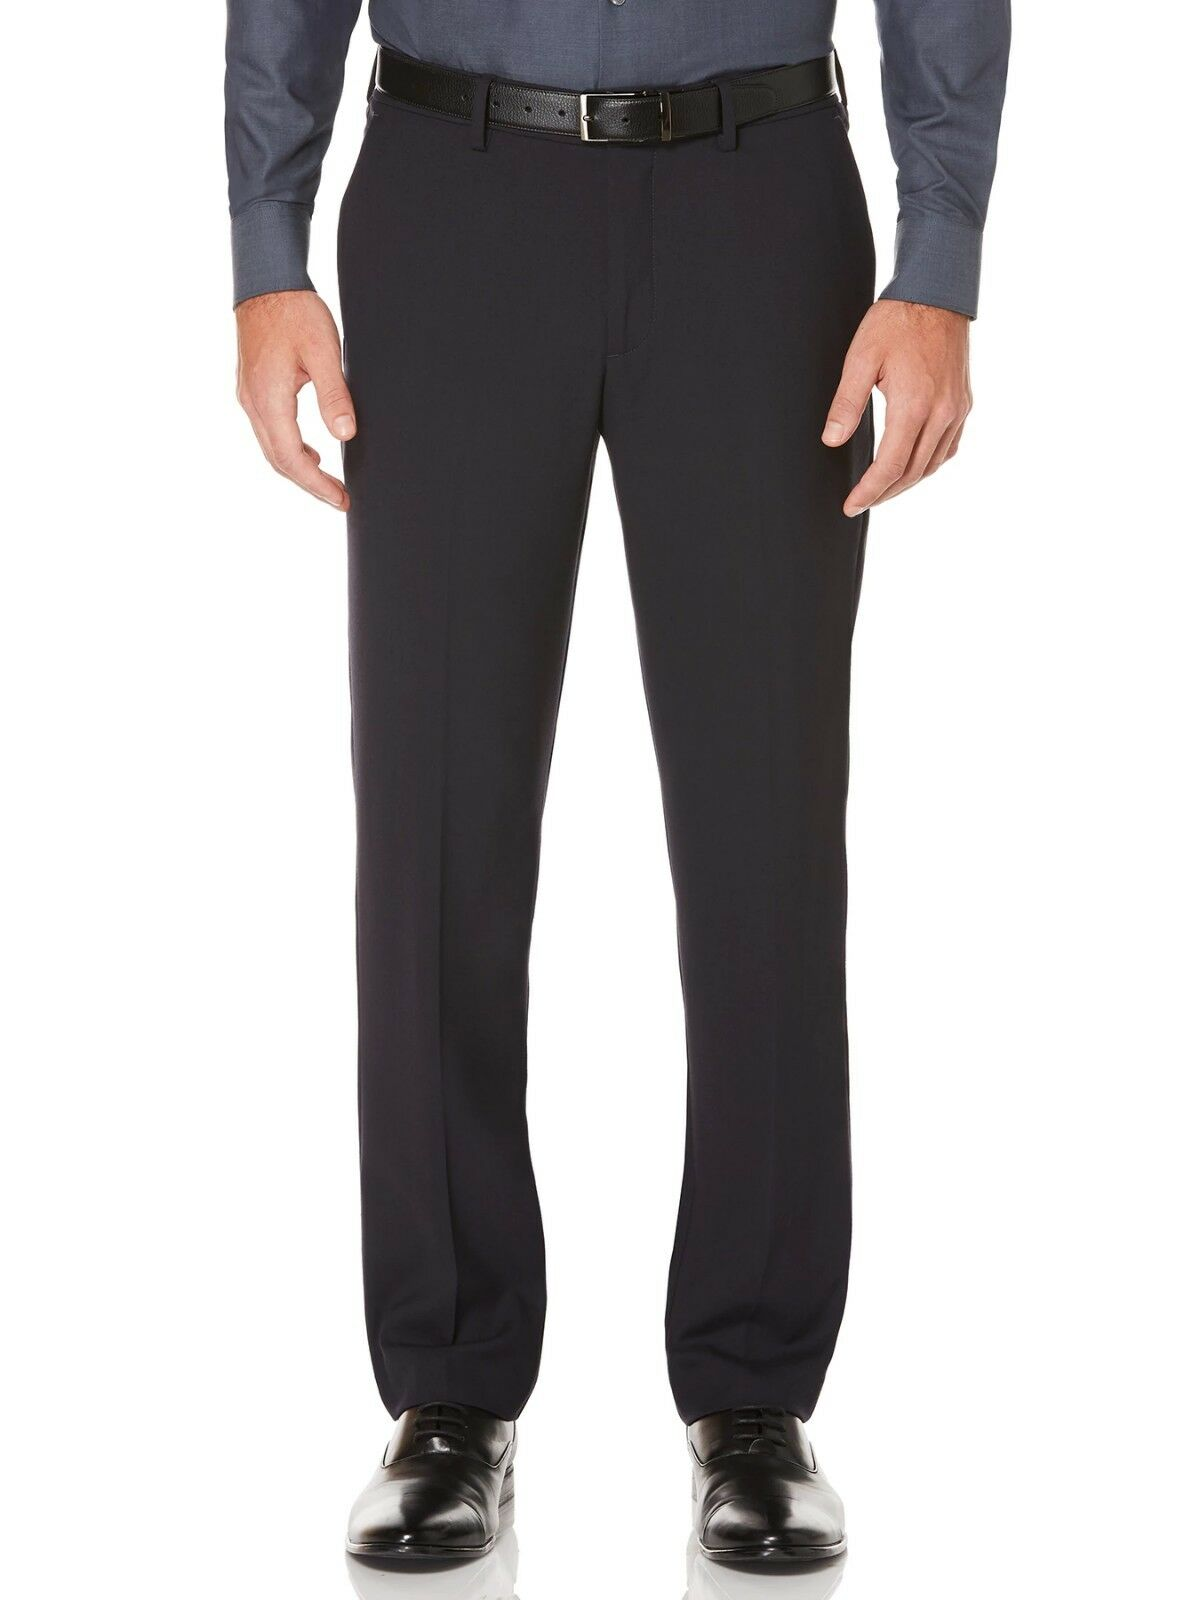 PERRY ELLIS PORTFOLIO men blueE SLIM FIT FLAT FRONT SUIT DRESS PANTS 29W 30L